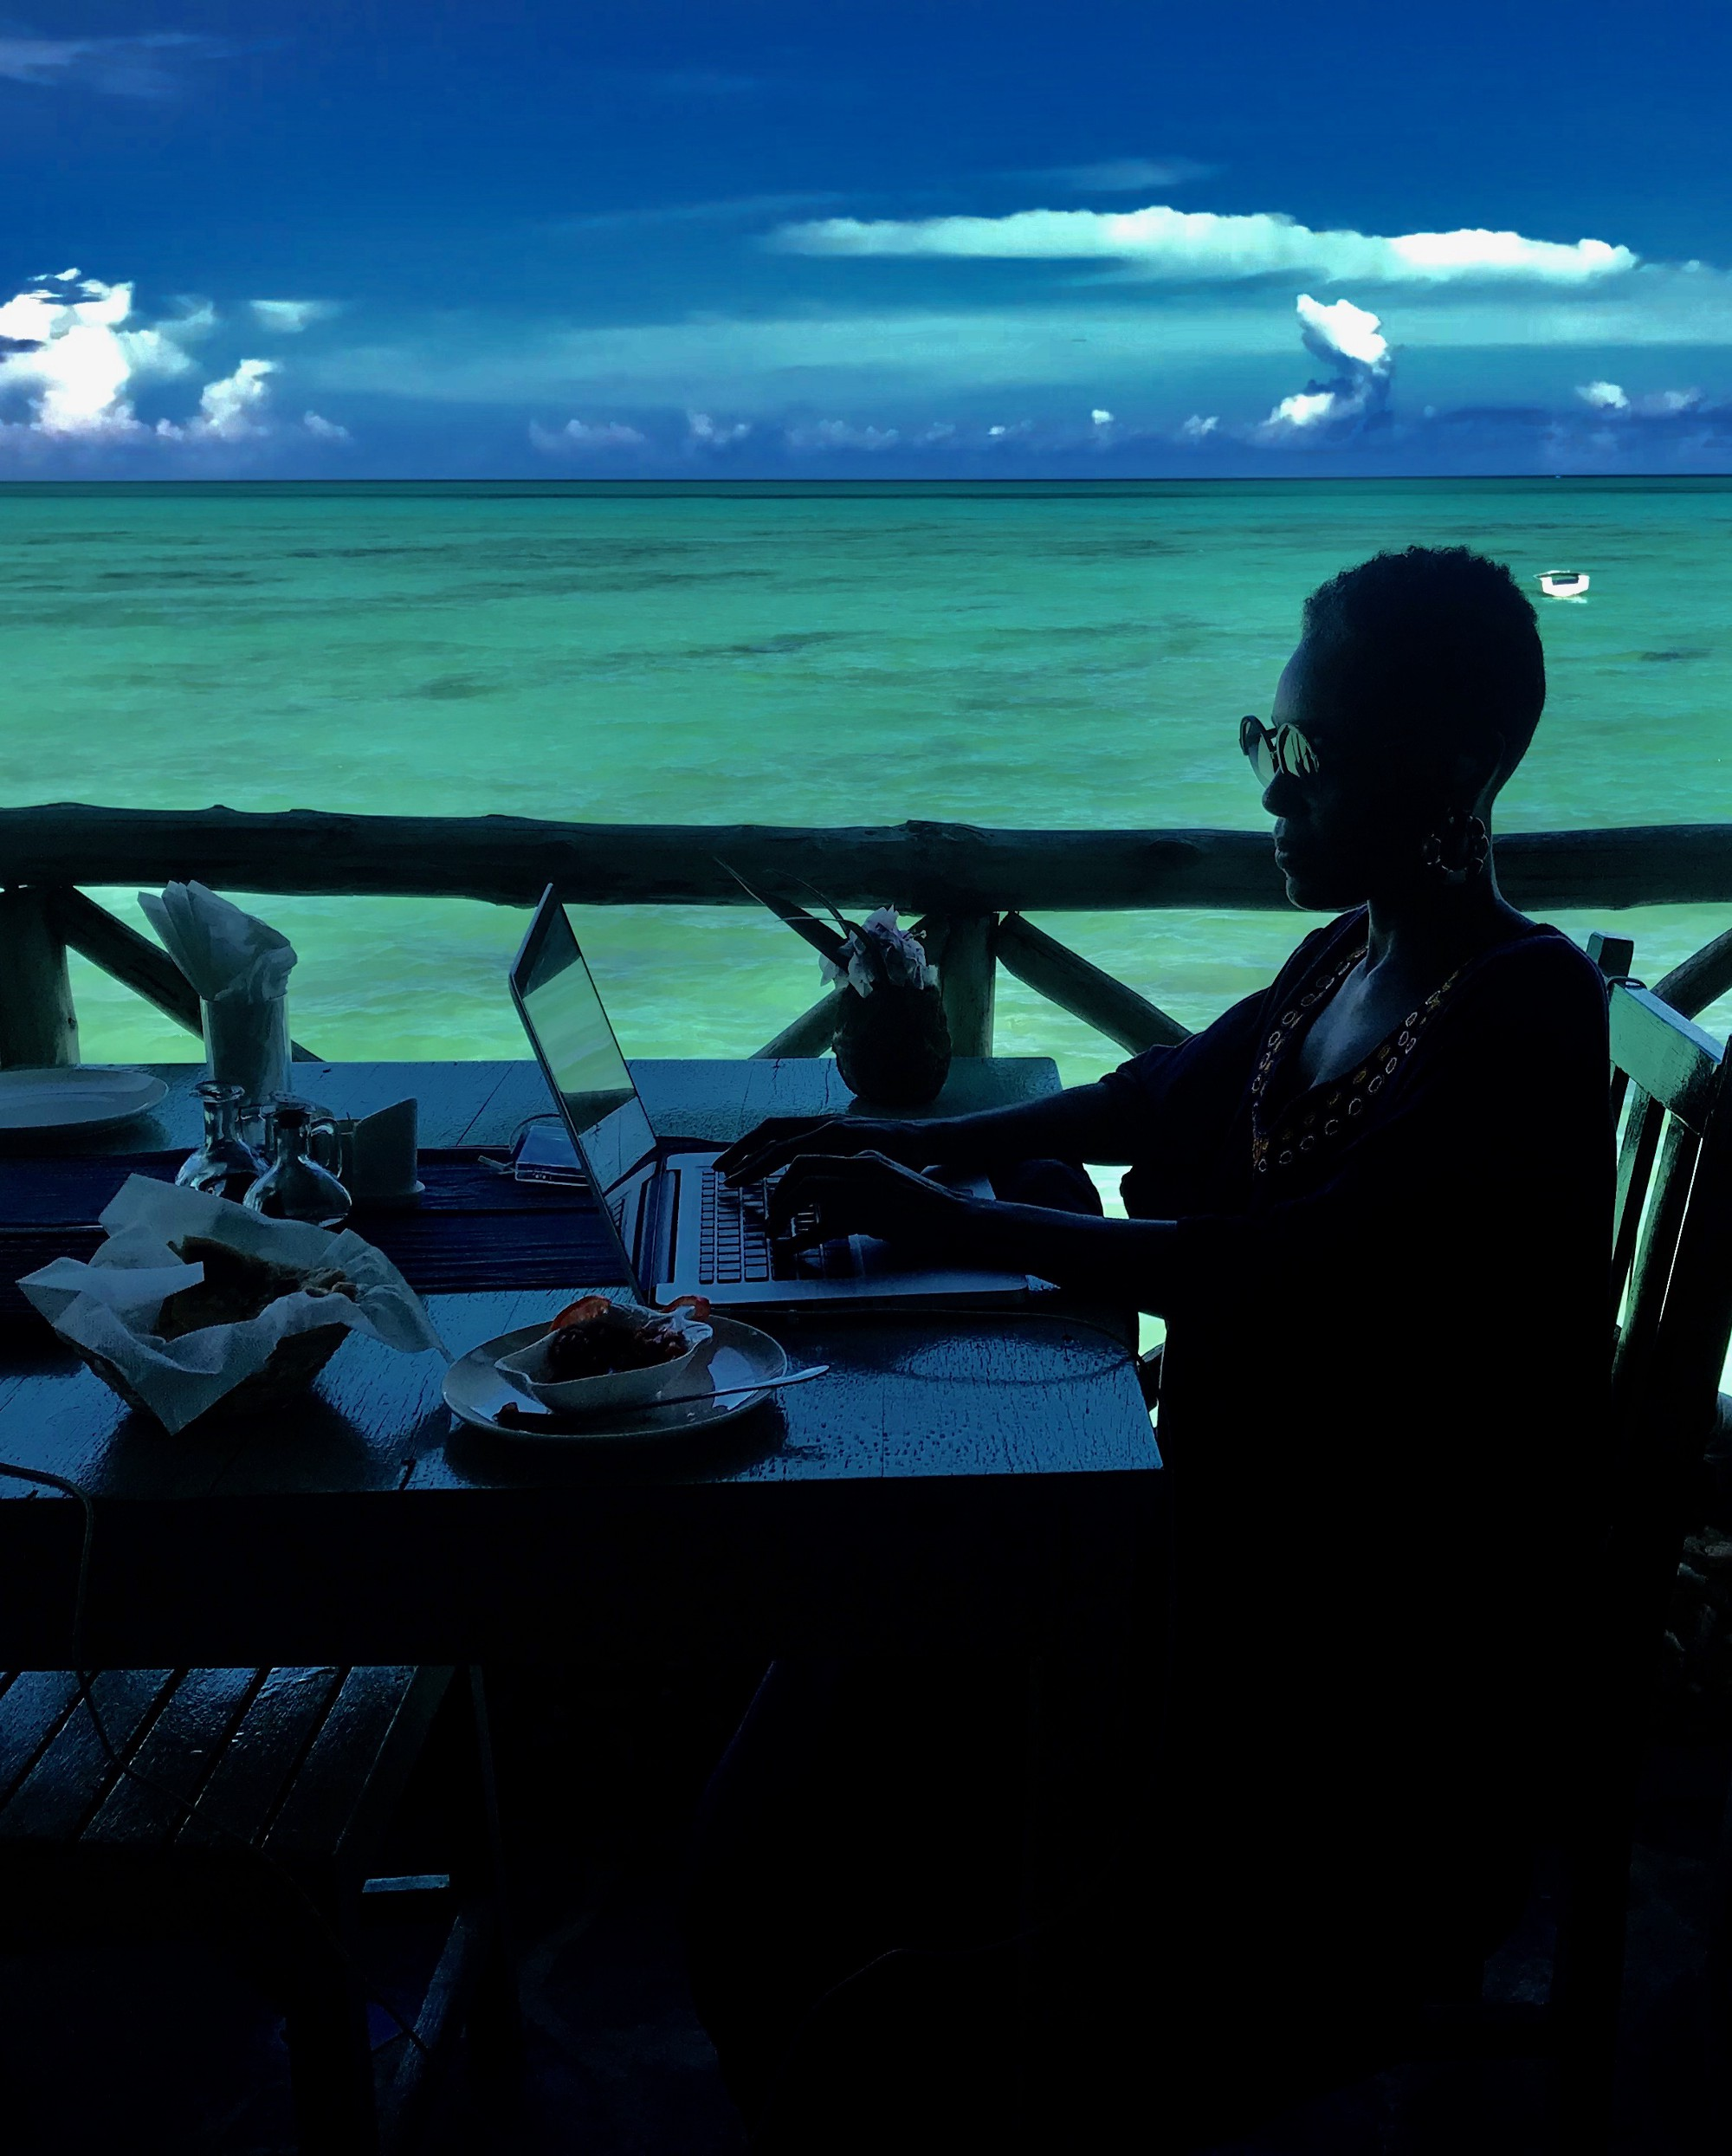 Photo of the author working on her laptop aloft the Indian Ocean.